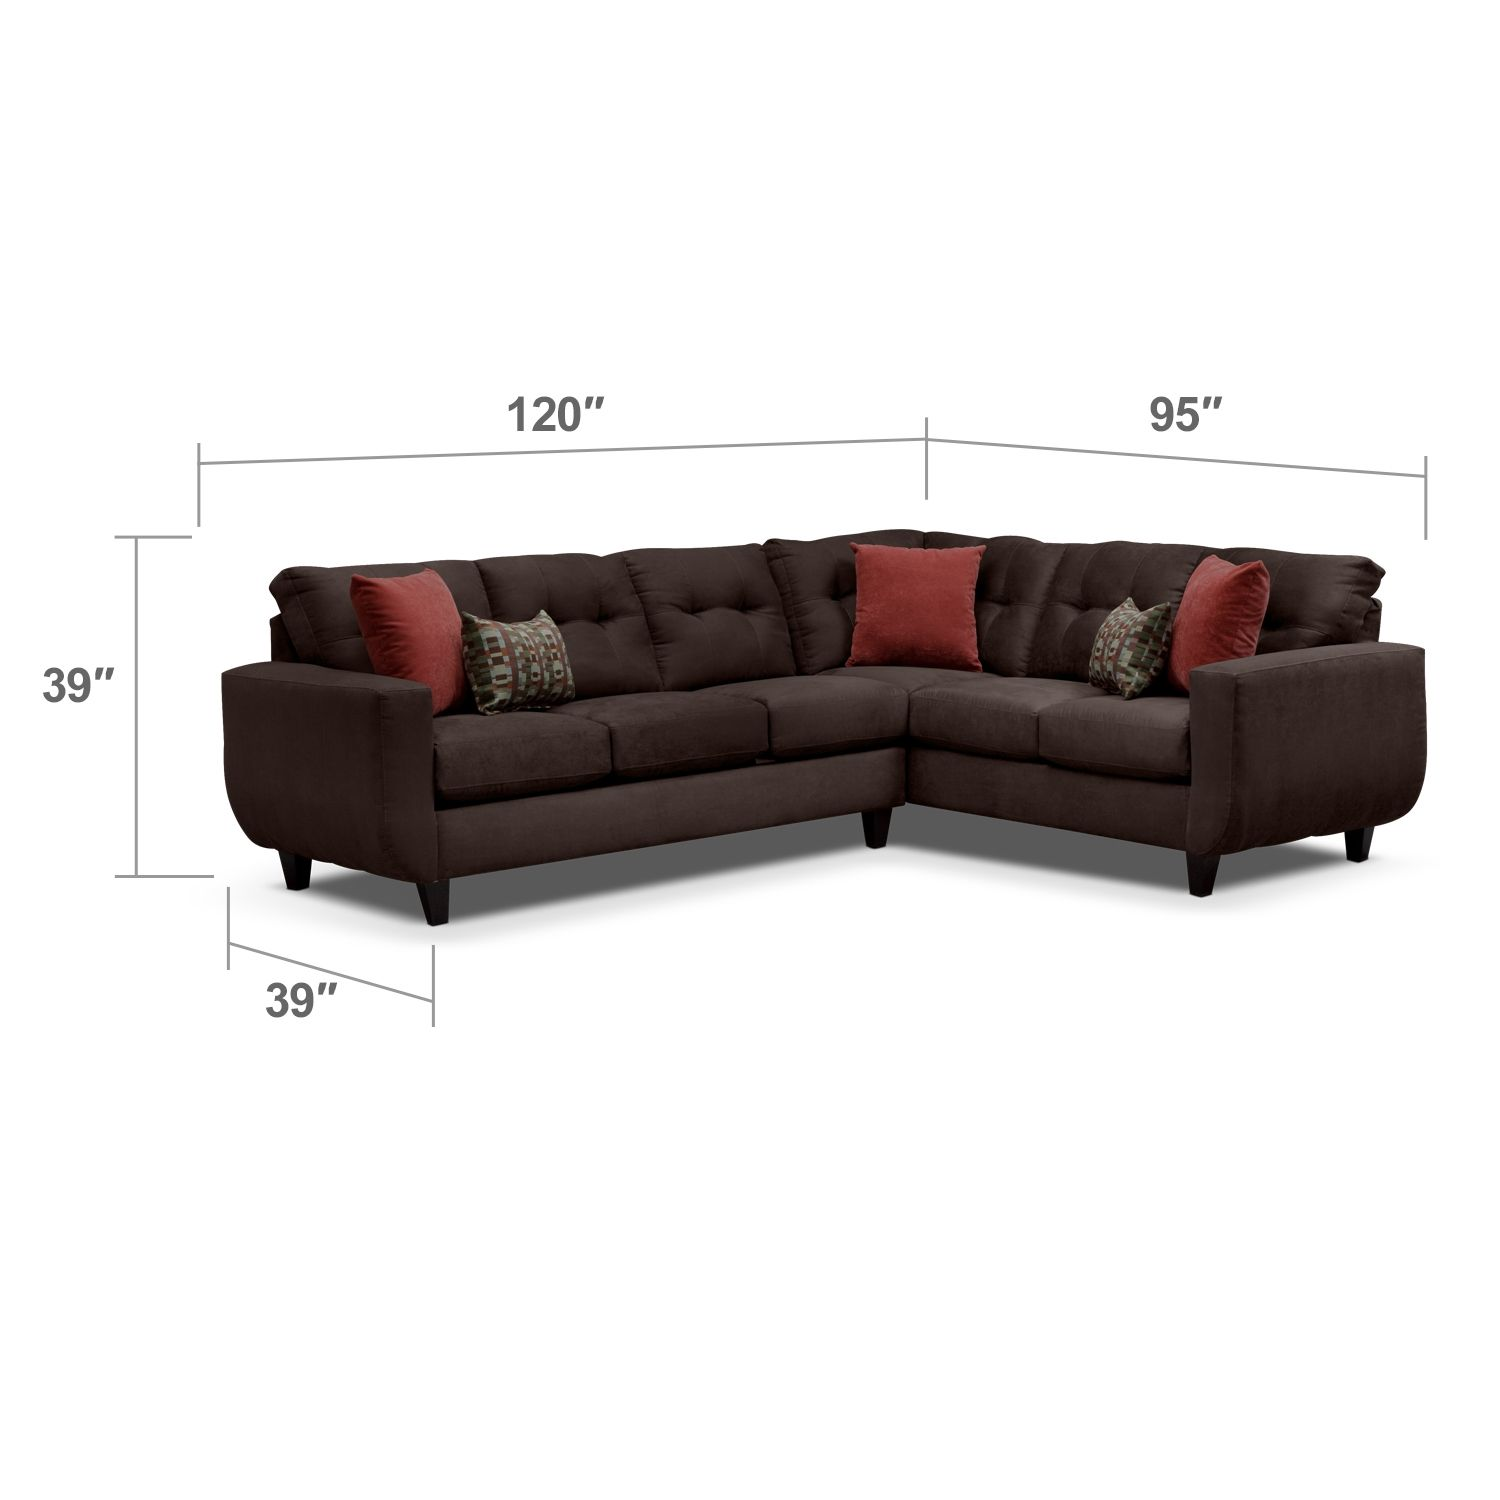 West Village Chocolate II 2 Pc. Sectional | Value City Furniture ...